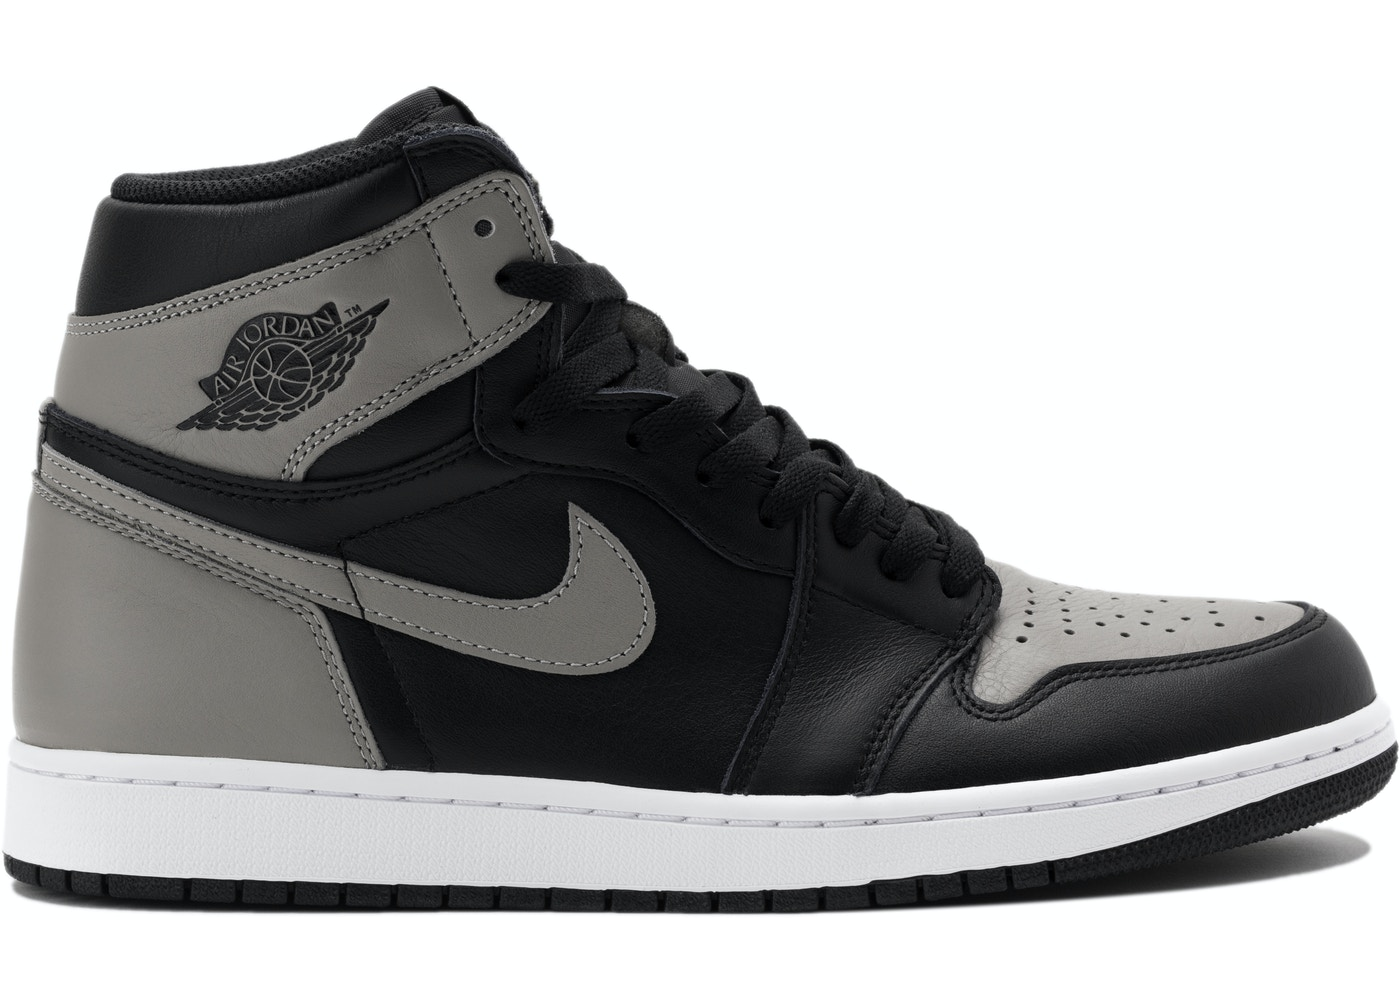 0ef6616c472 Jordan 1 Retro High Shadow (2018) - 555088-013